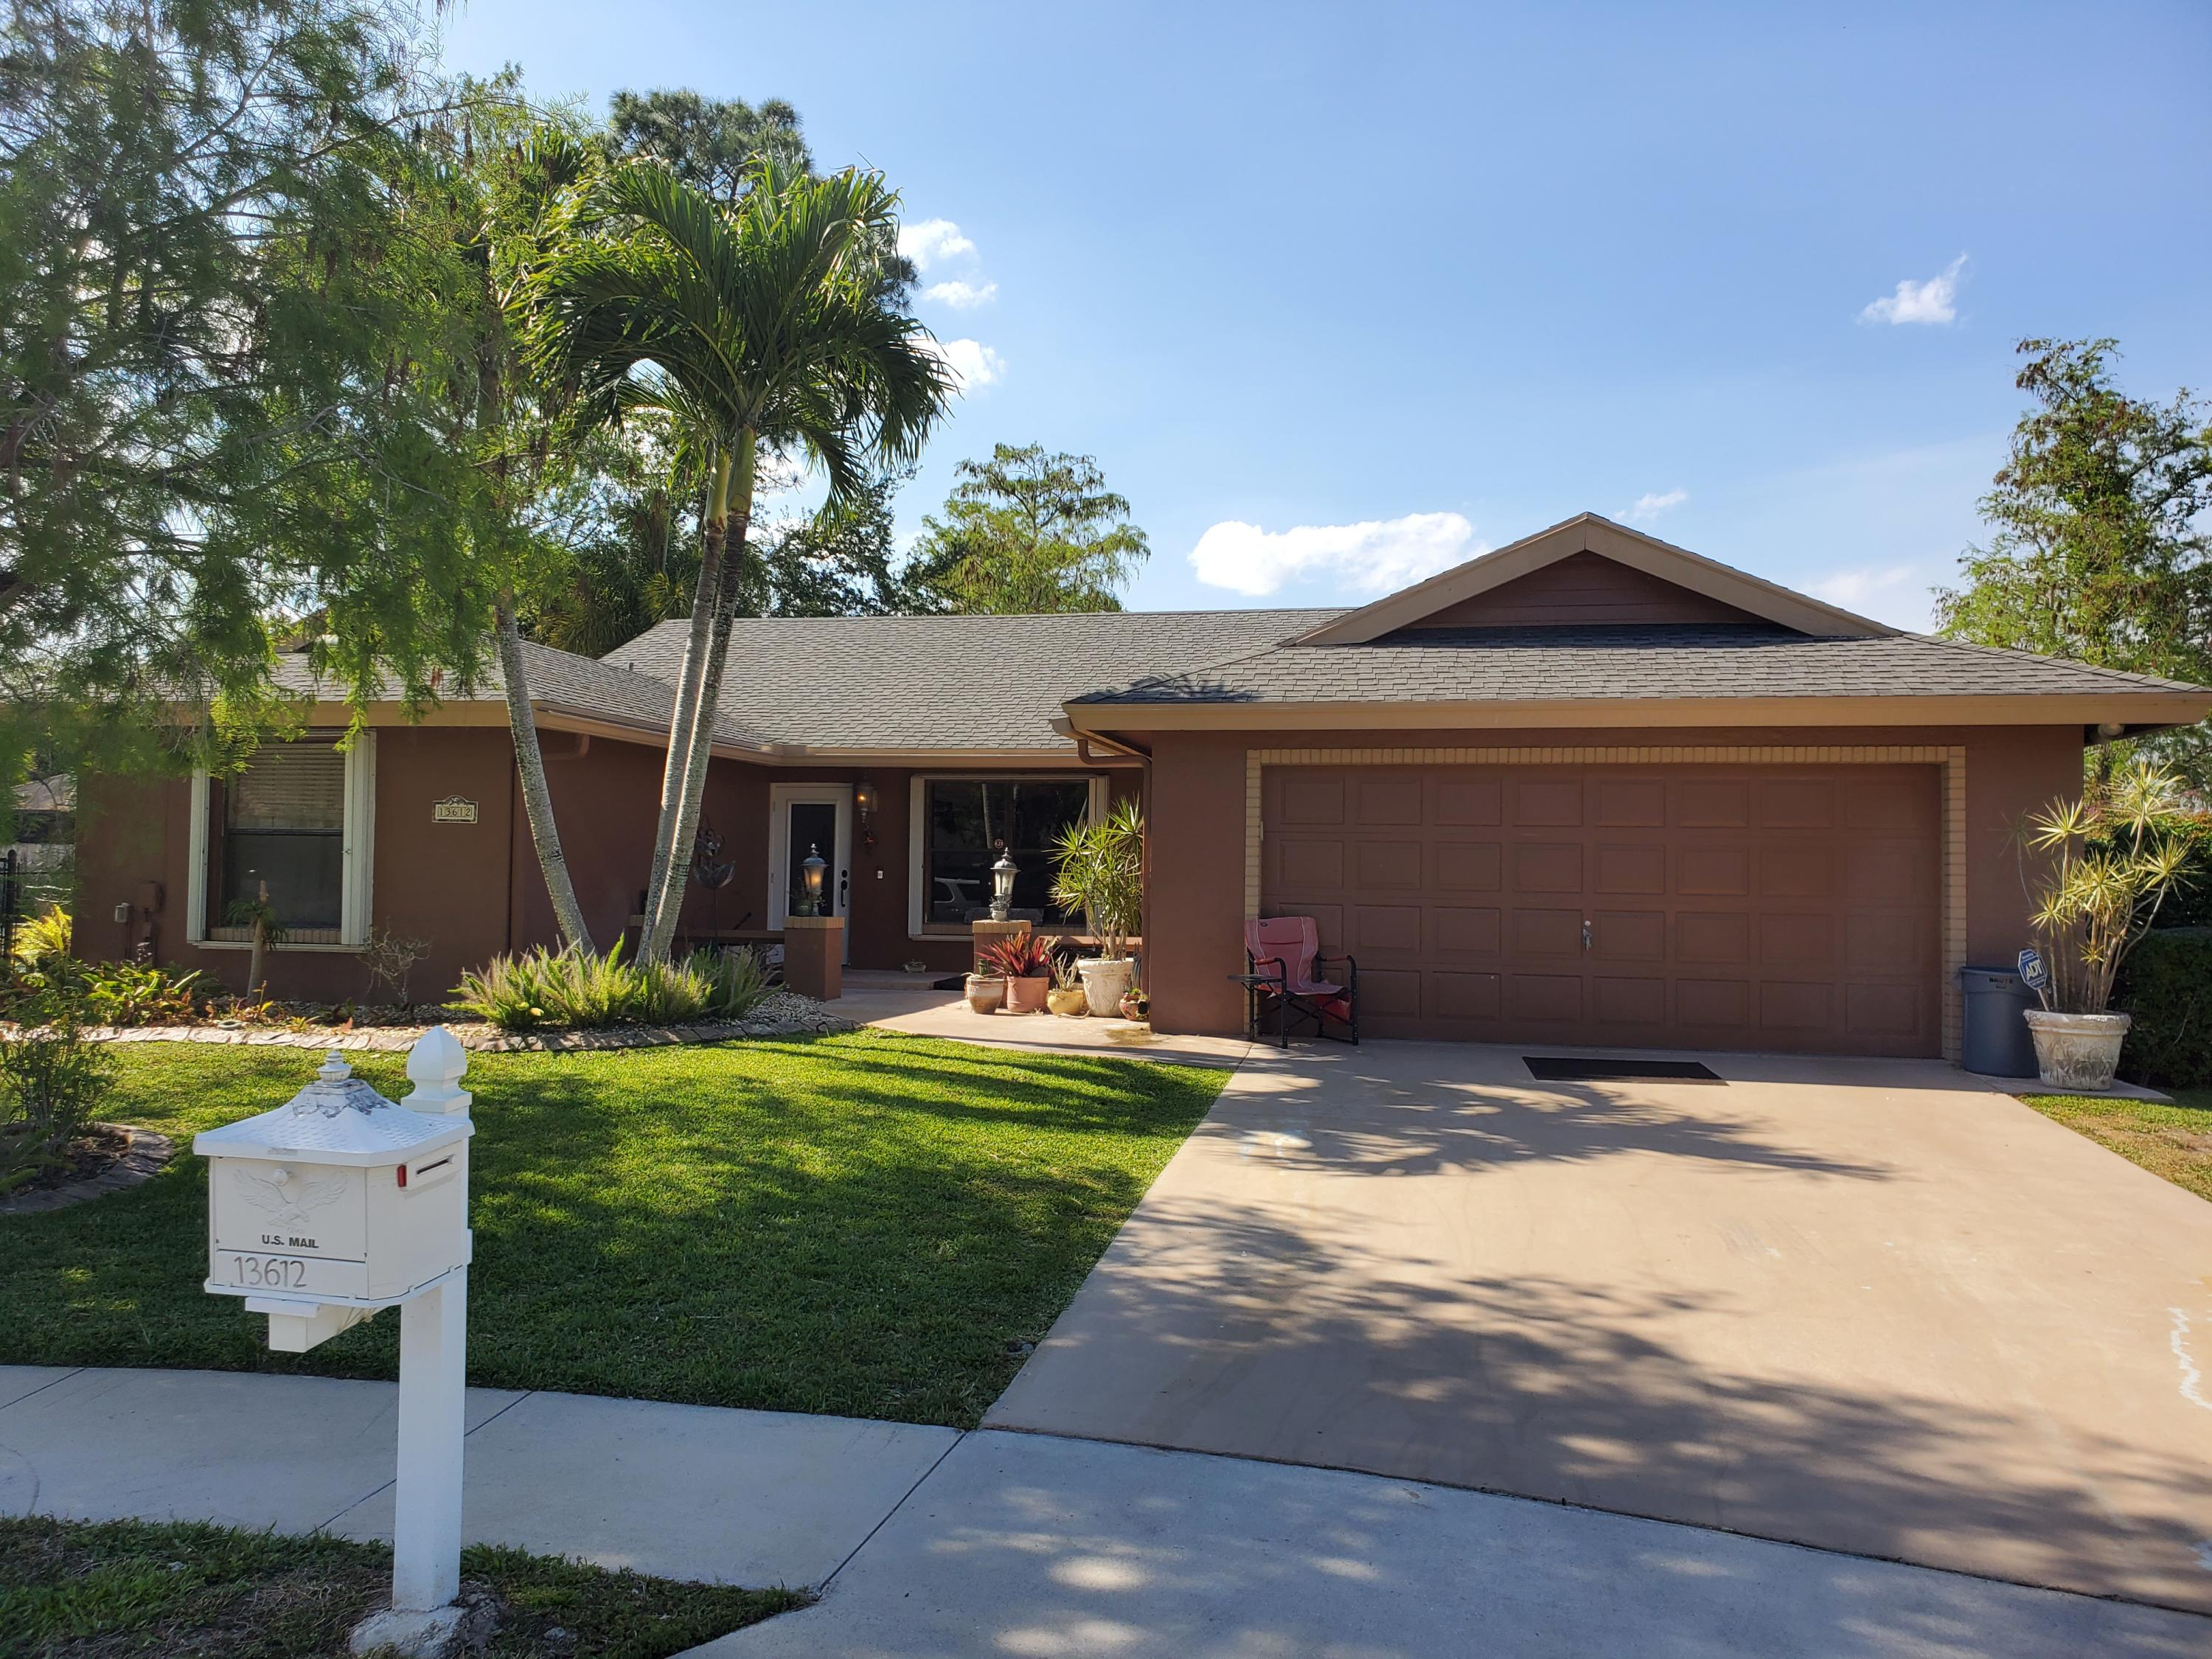 13612  Firewood Court  For Sale 10707496, FL